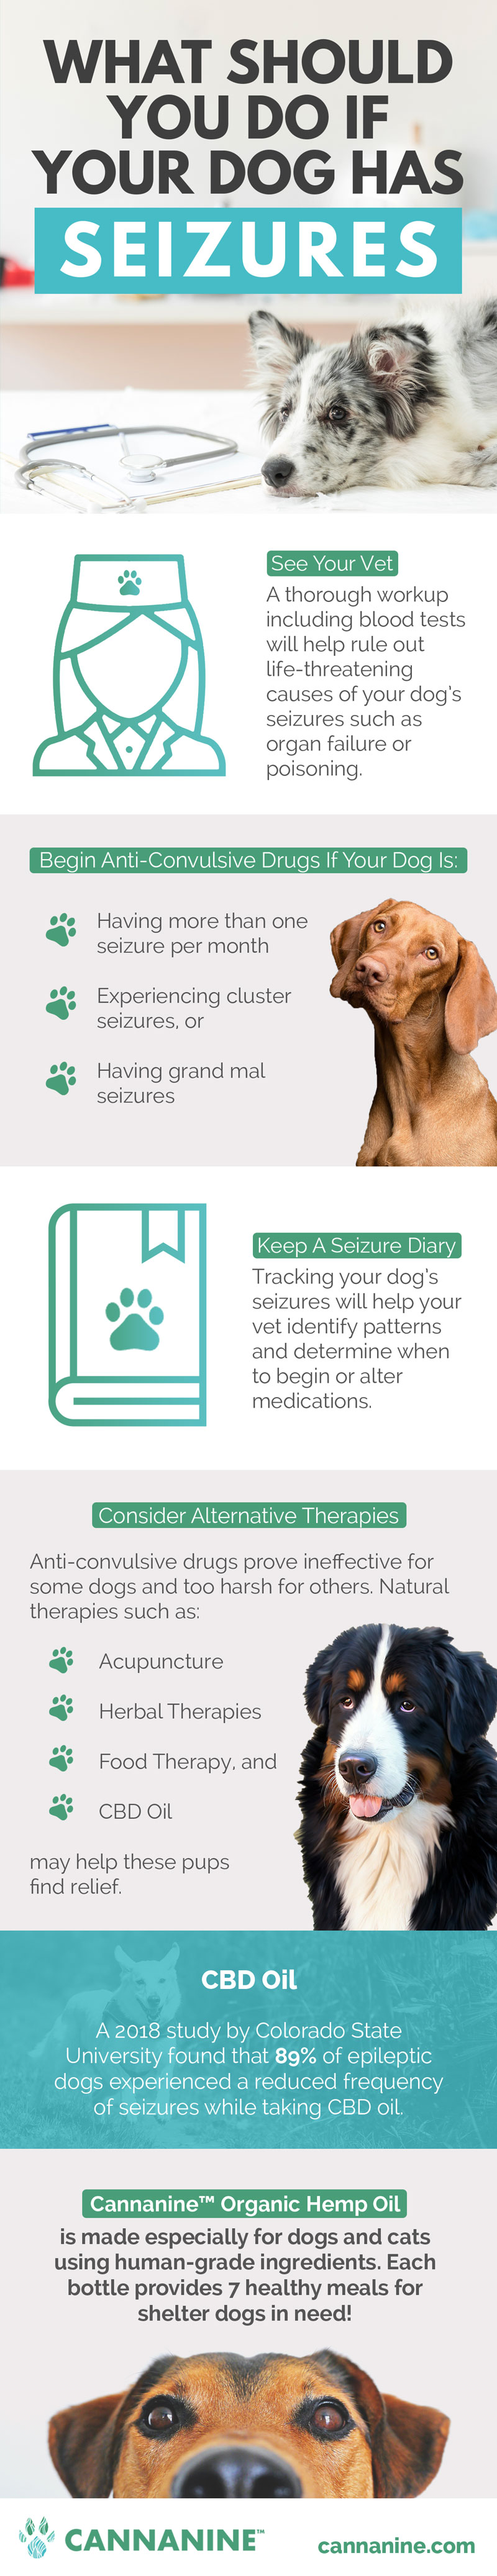 Alternative therapies for epilepsy in dogs